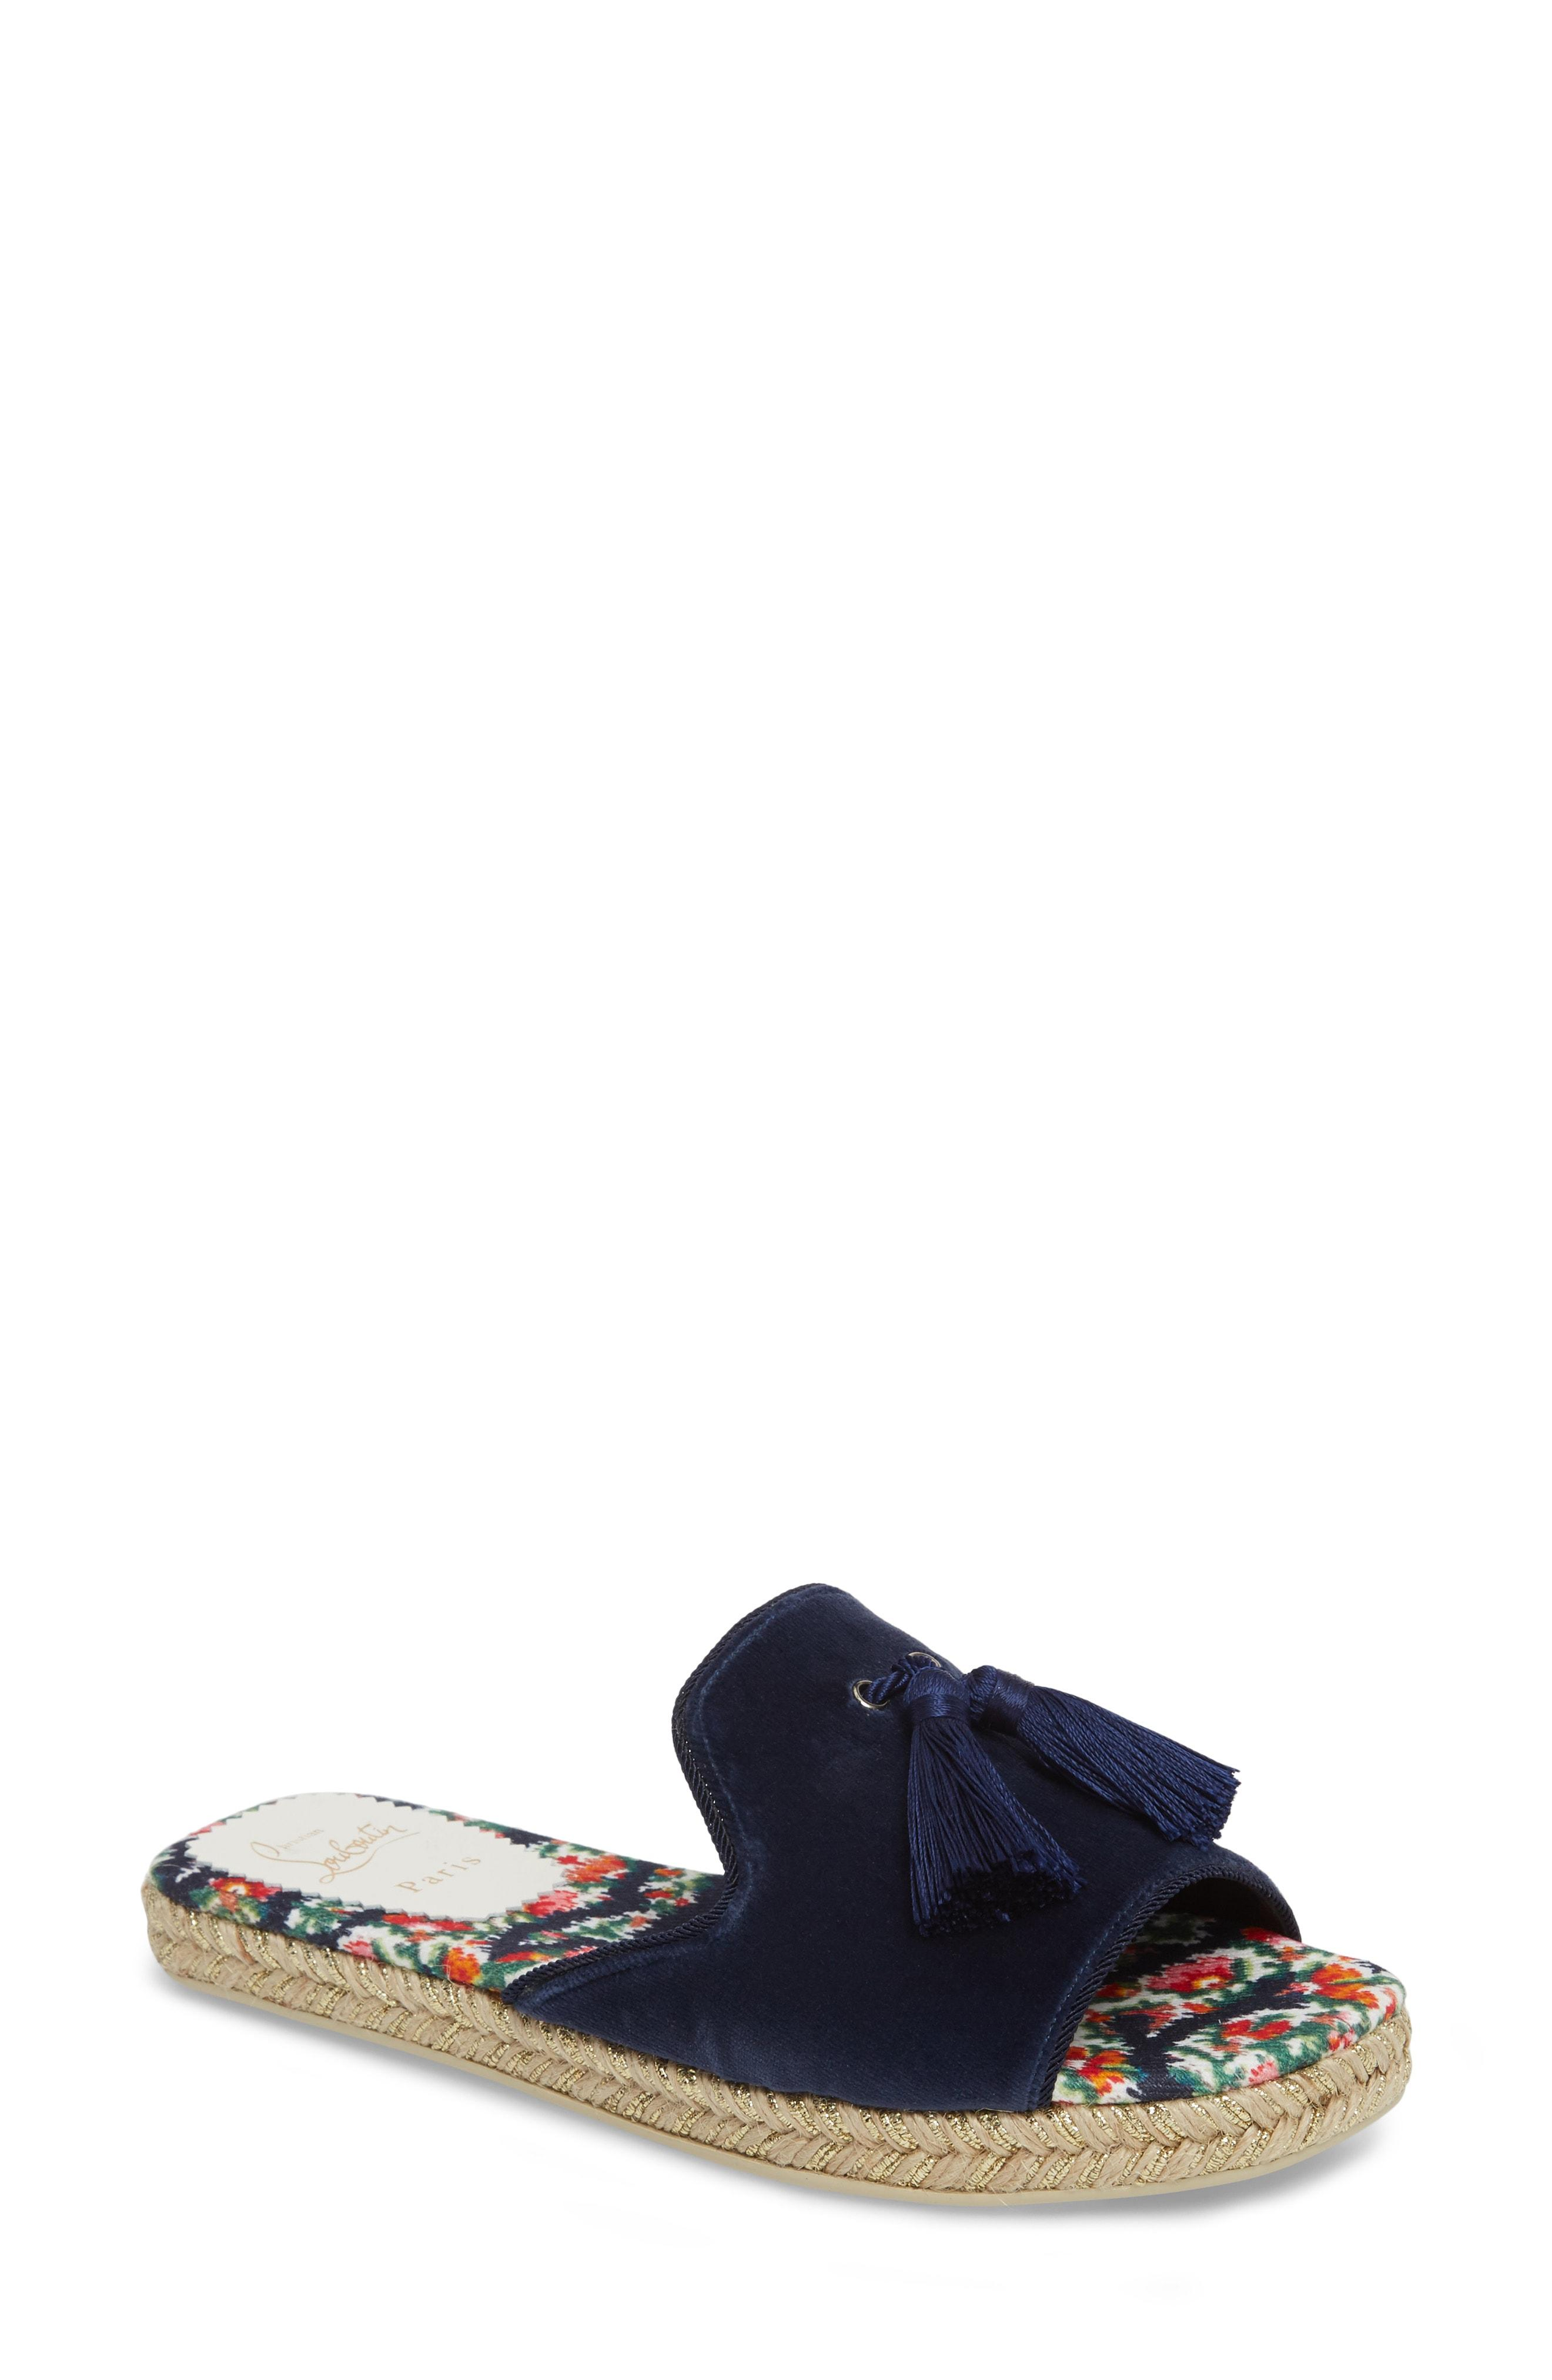 c0013714006f Christian Louboutin Pacha Flat Espadrille Sandal In Blue Multi ...